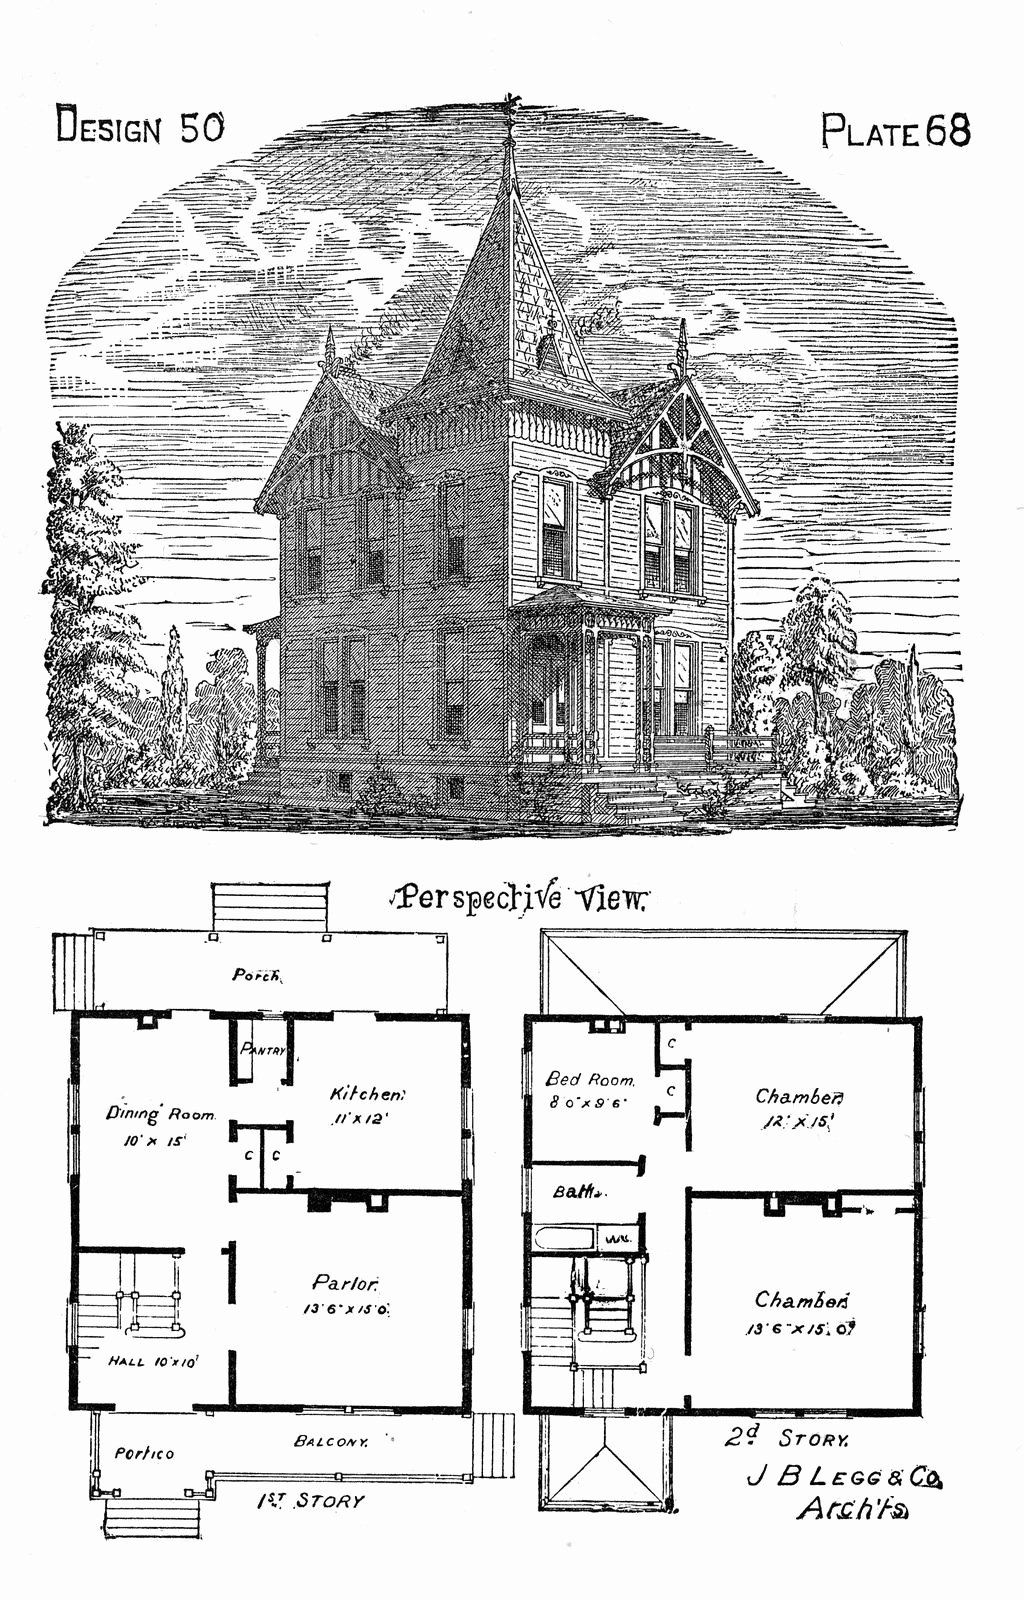 Victorian Era House Plans Fresh 9 Haunted Houses Furnishings Clipart Halloween Ish In 2020 Victorian House Plans Mansion Floor Plan Victorian Homes